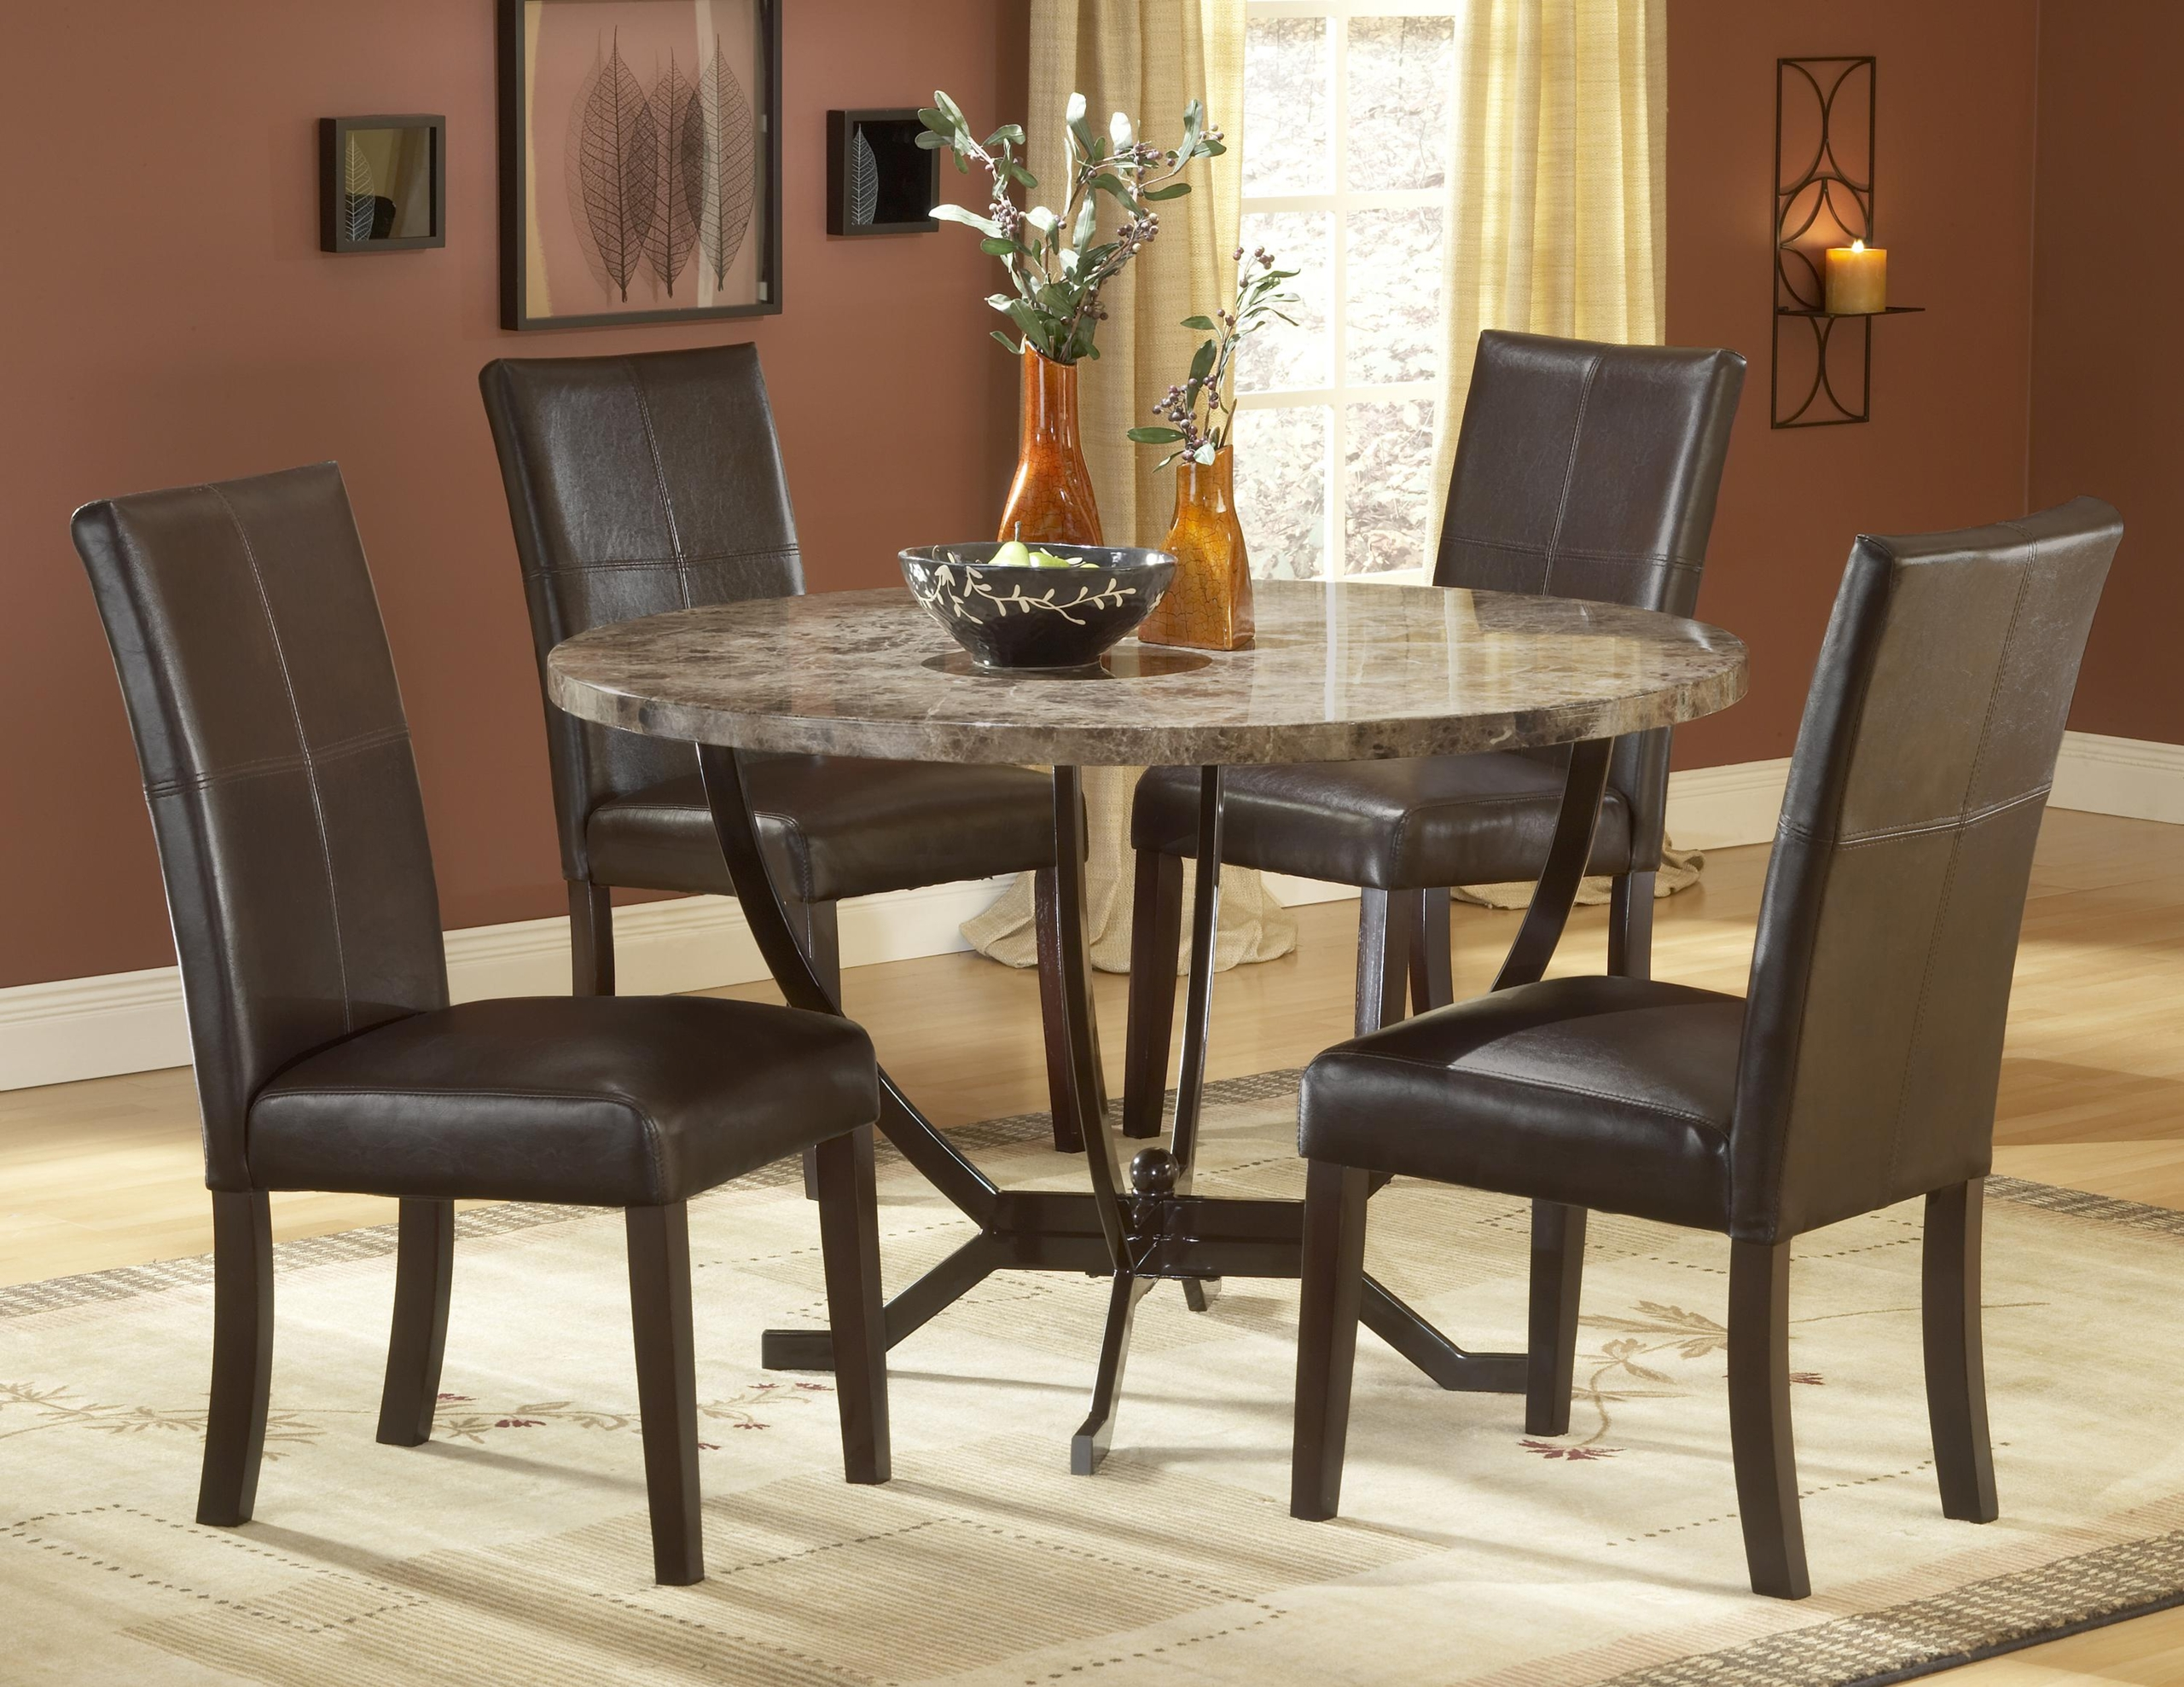 Beau Round Marble Dining Table 9